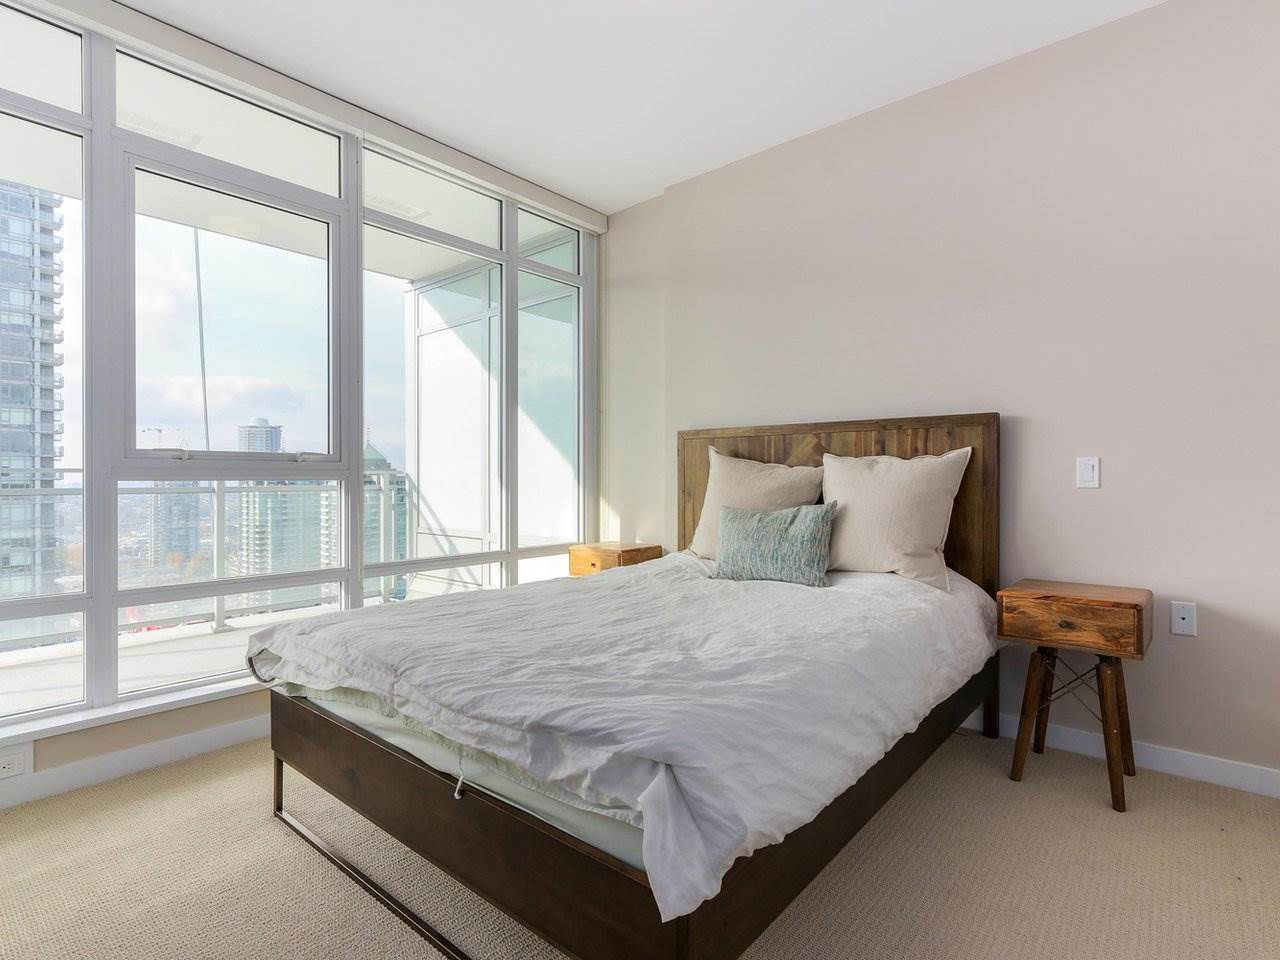 Photo 8: Photos: 1902 4485 SKYLINE Drive in Burnaby: Brentwood Park Condo for sale (Burnaby North)  : MLS®# R2378091